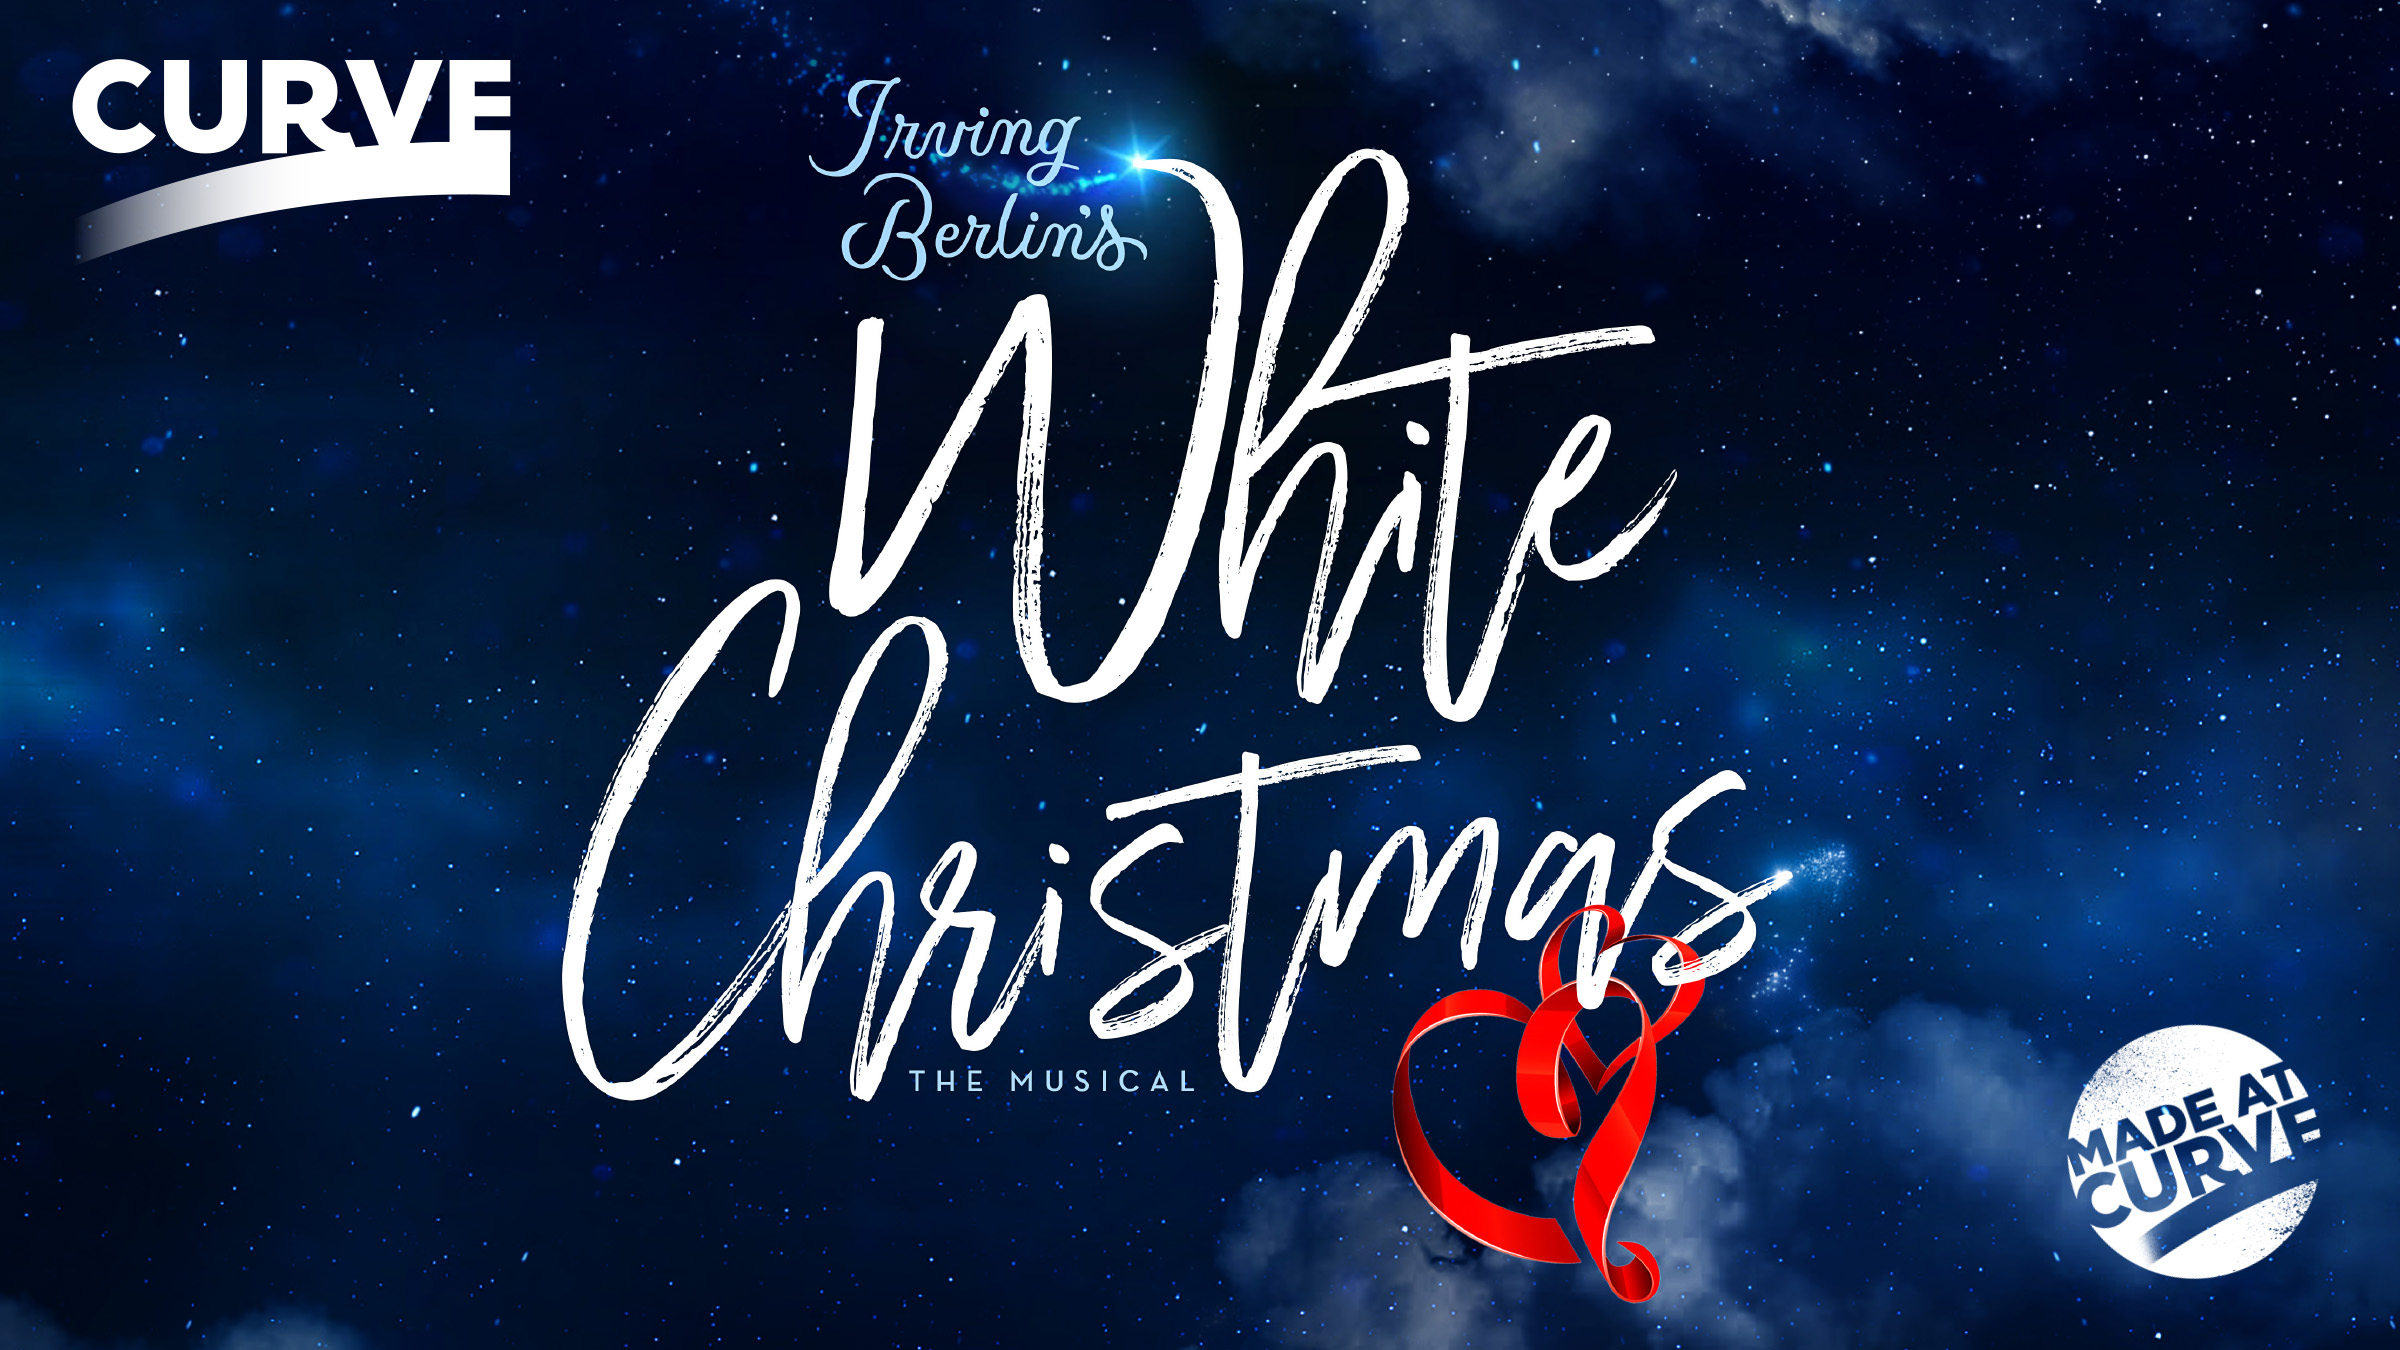 promo curve leicester full casting of white christmas - When Was White Christmas Written